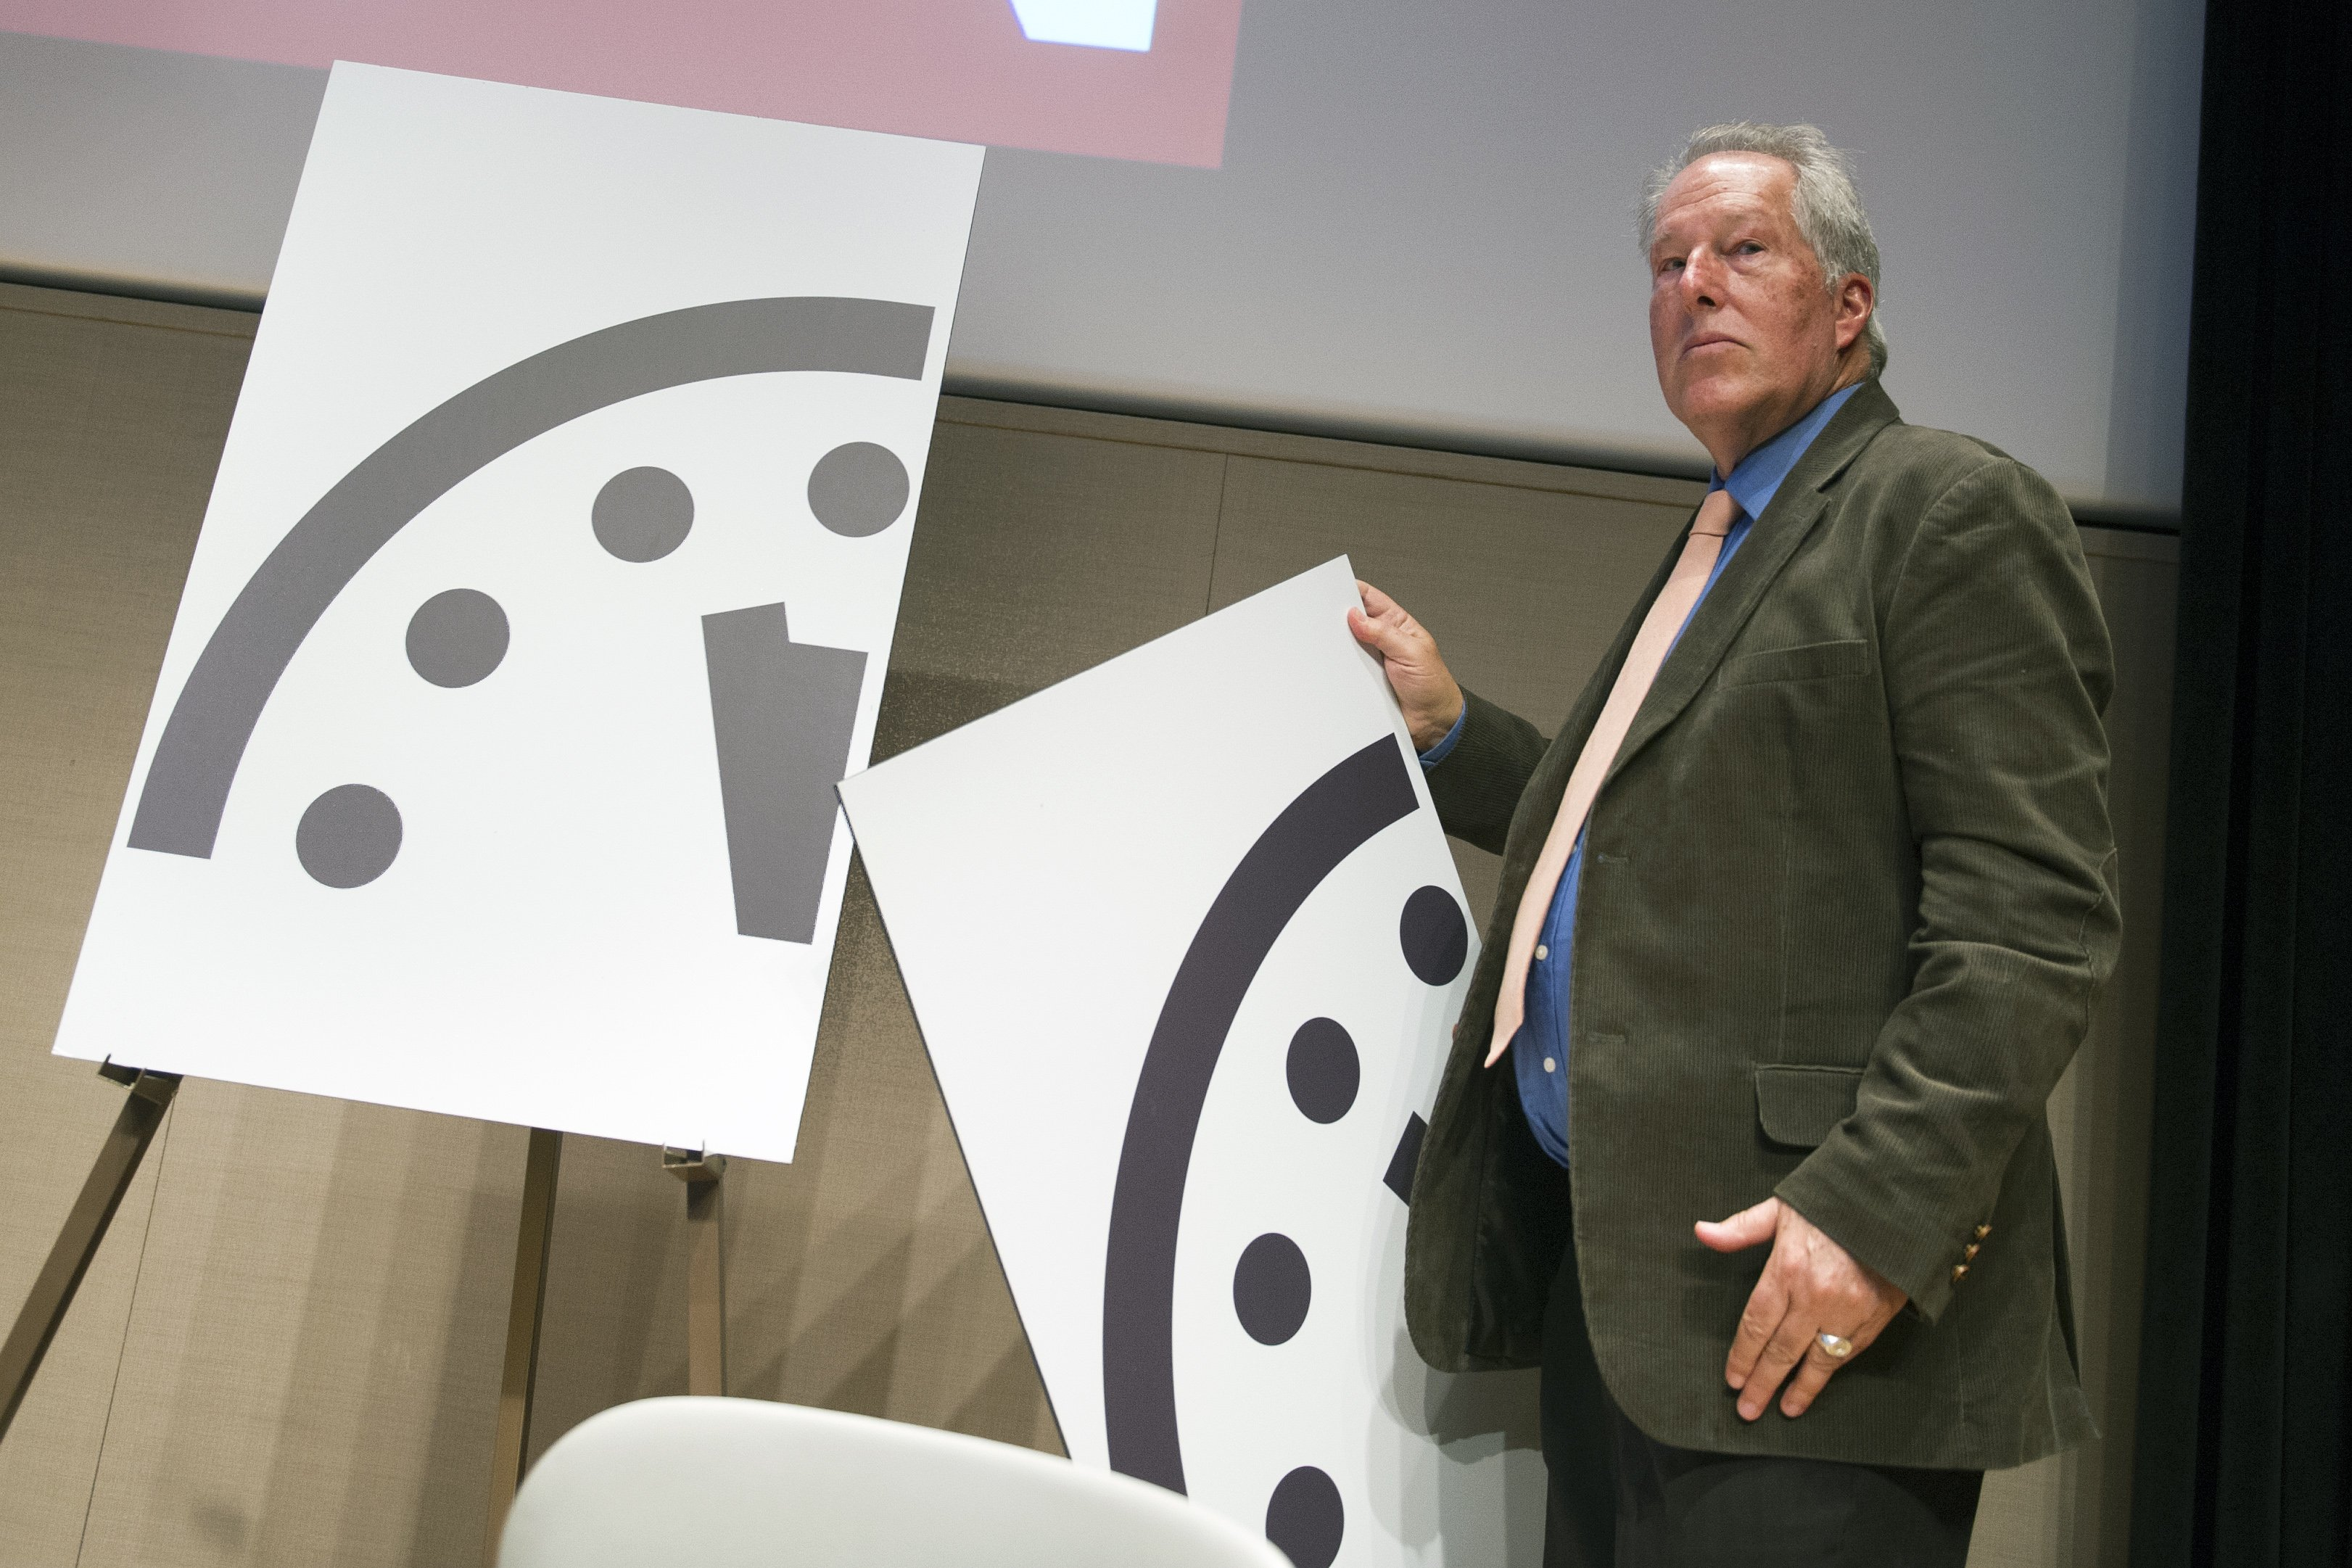 Climate scientist Richard Somerville, a member, Science and Security Board, Bulletin of the Atomic Scientists, unveils the new Doomsday Clock in Washington on Jan. 22, 2015.